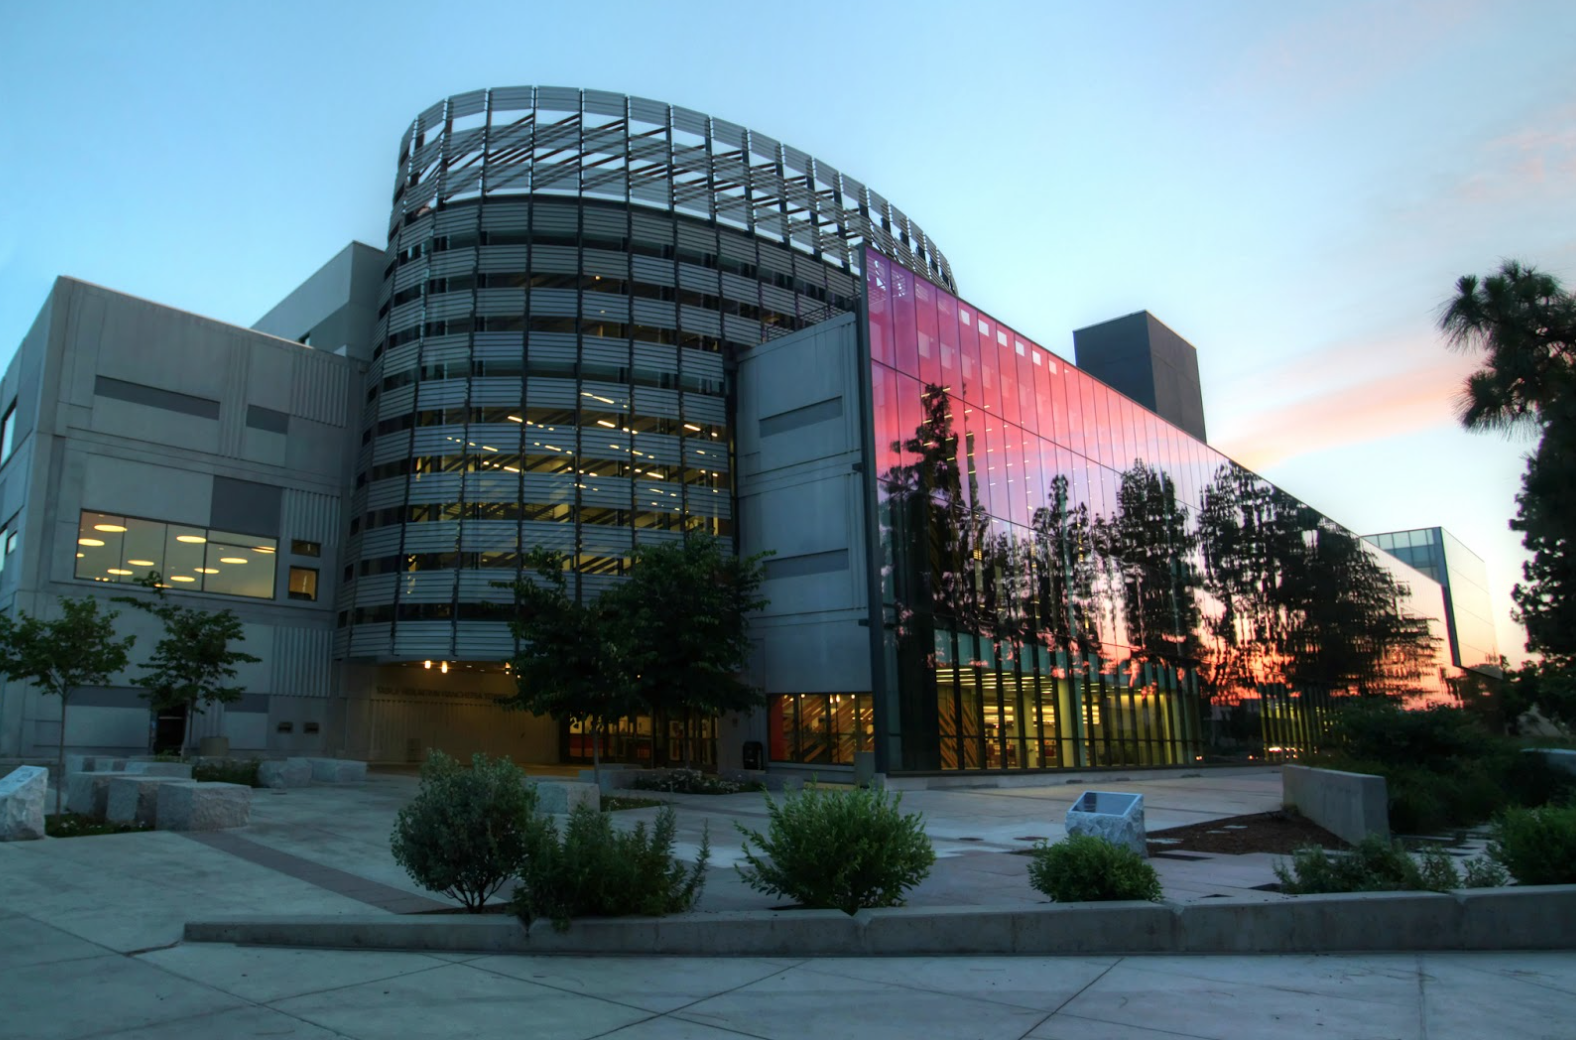 Home - Study Abroad - LibGuides at California State ...